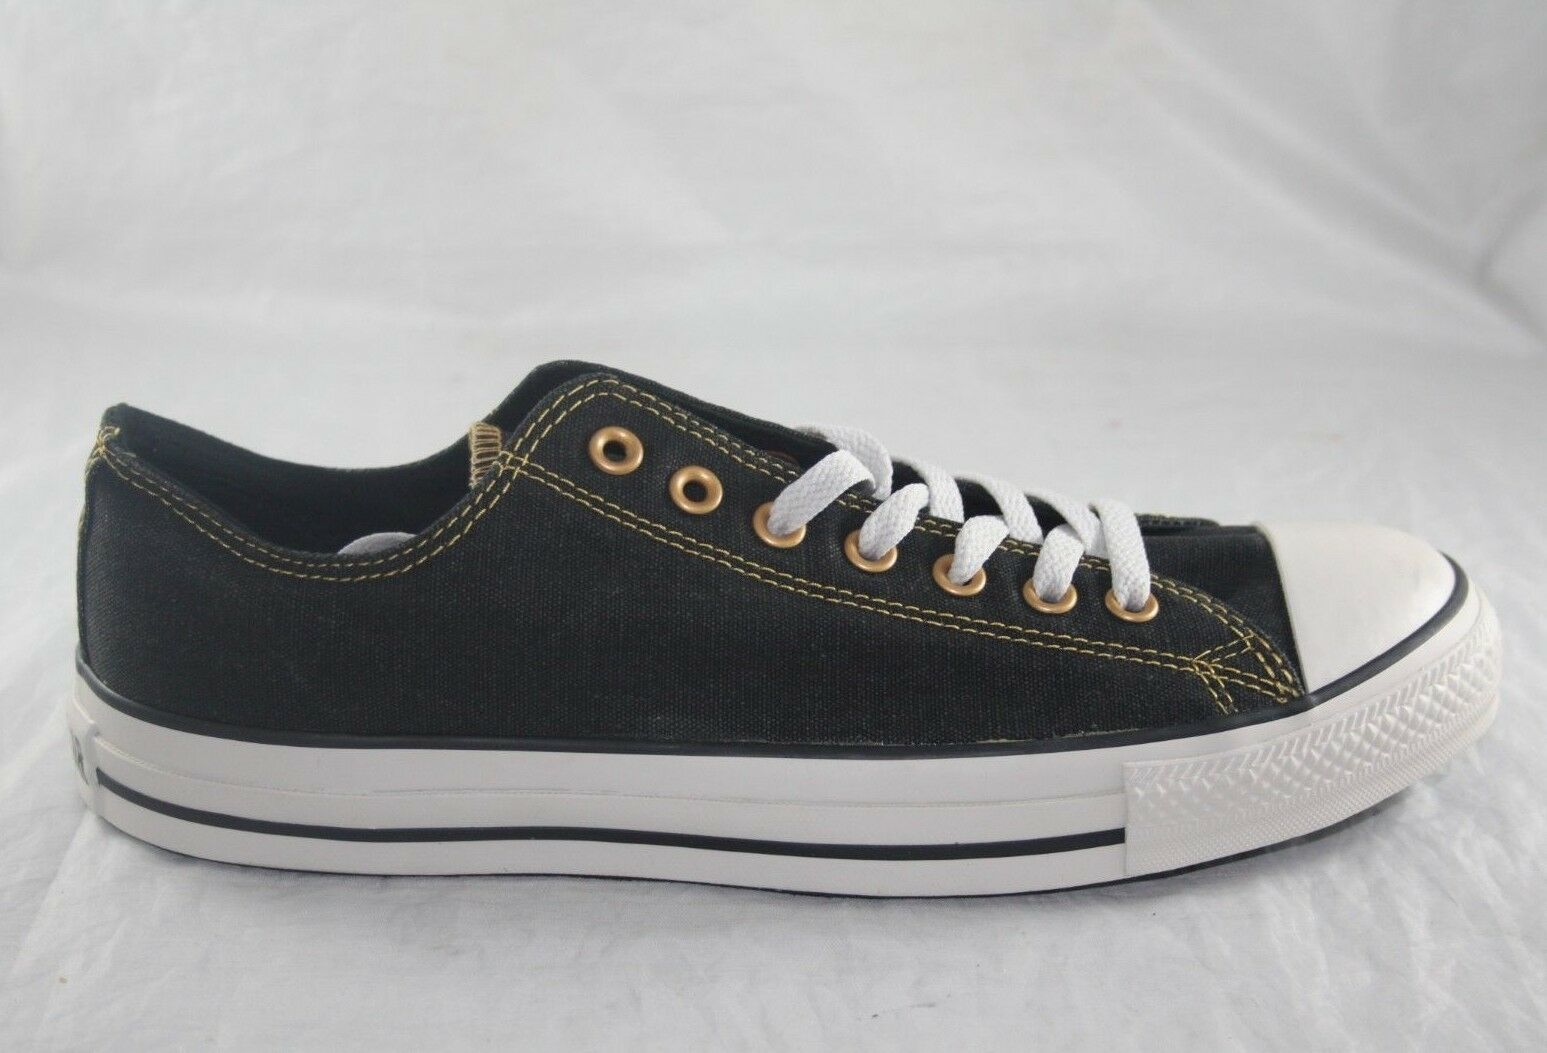 MEN'S CONVERSE 105803F BLACK WHITE LOW CANVAS CASUAL SHOE SIZE 11 BRONZE STITCH